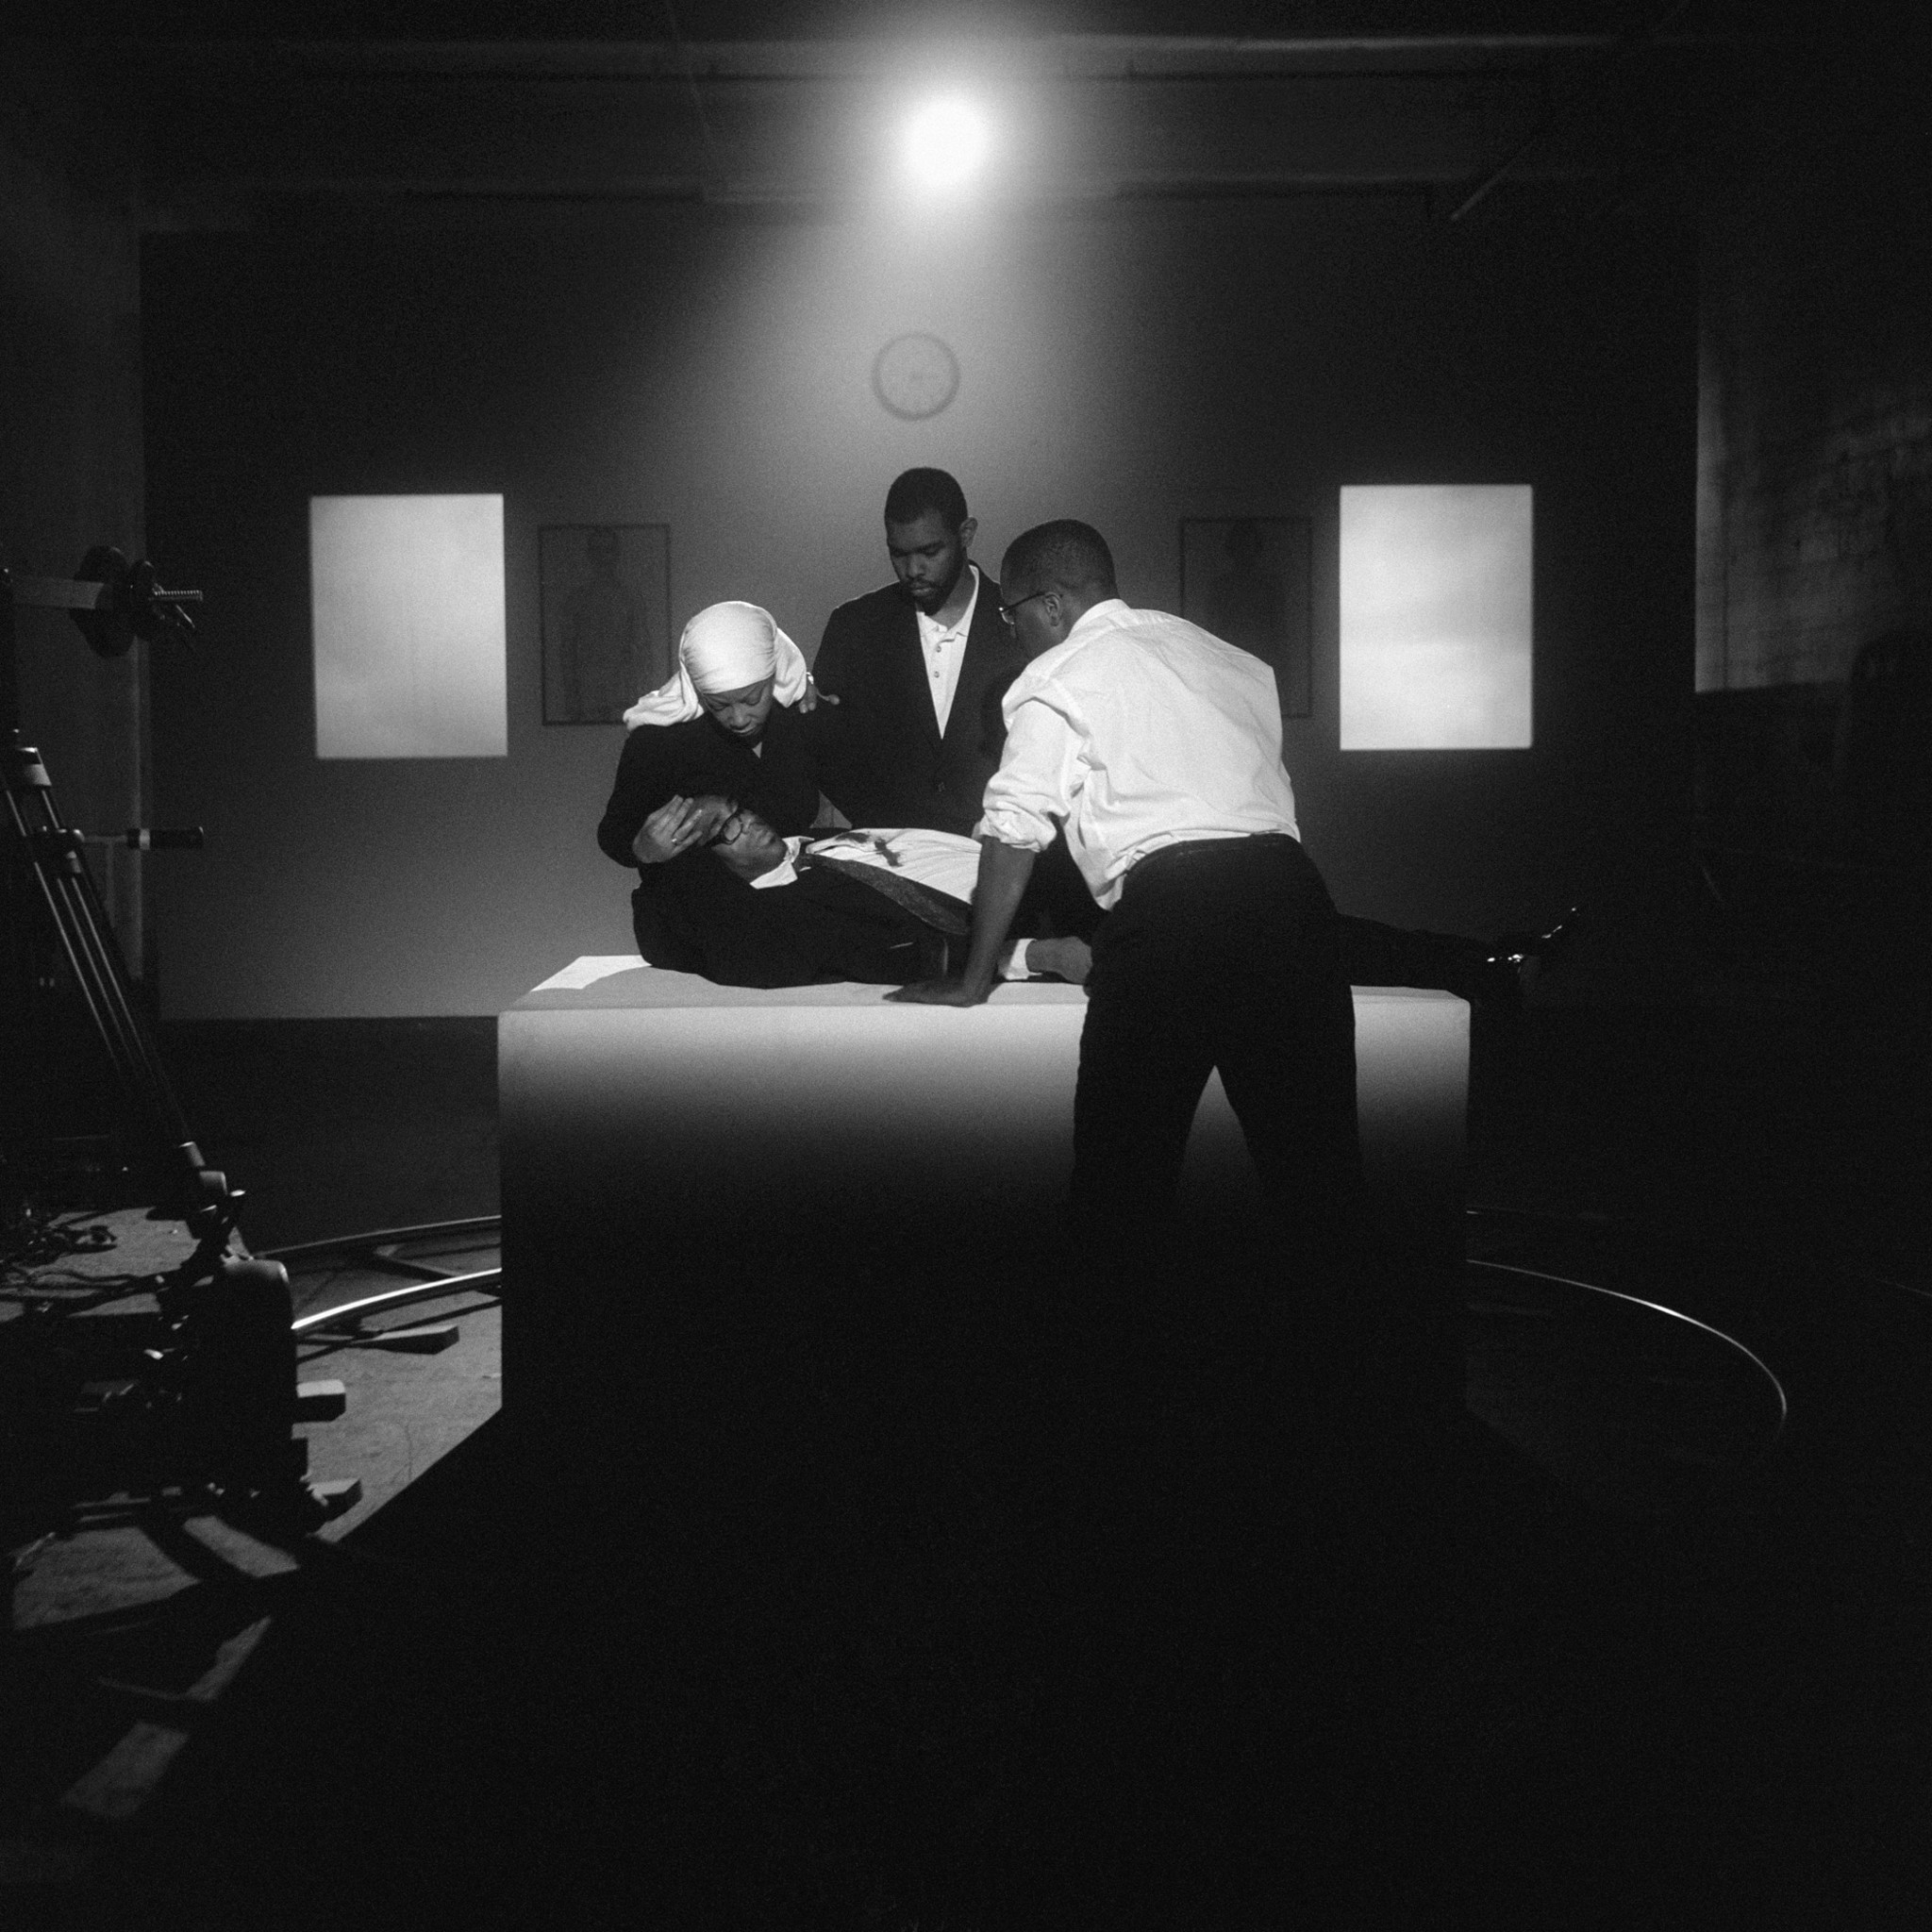 """The Assassination of Medgar, Malcolm, and Martin,"" 2008, an archival pigment print by Carrie Mae Weems, provides a contemporary view of the Black Panther Party."